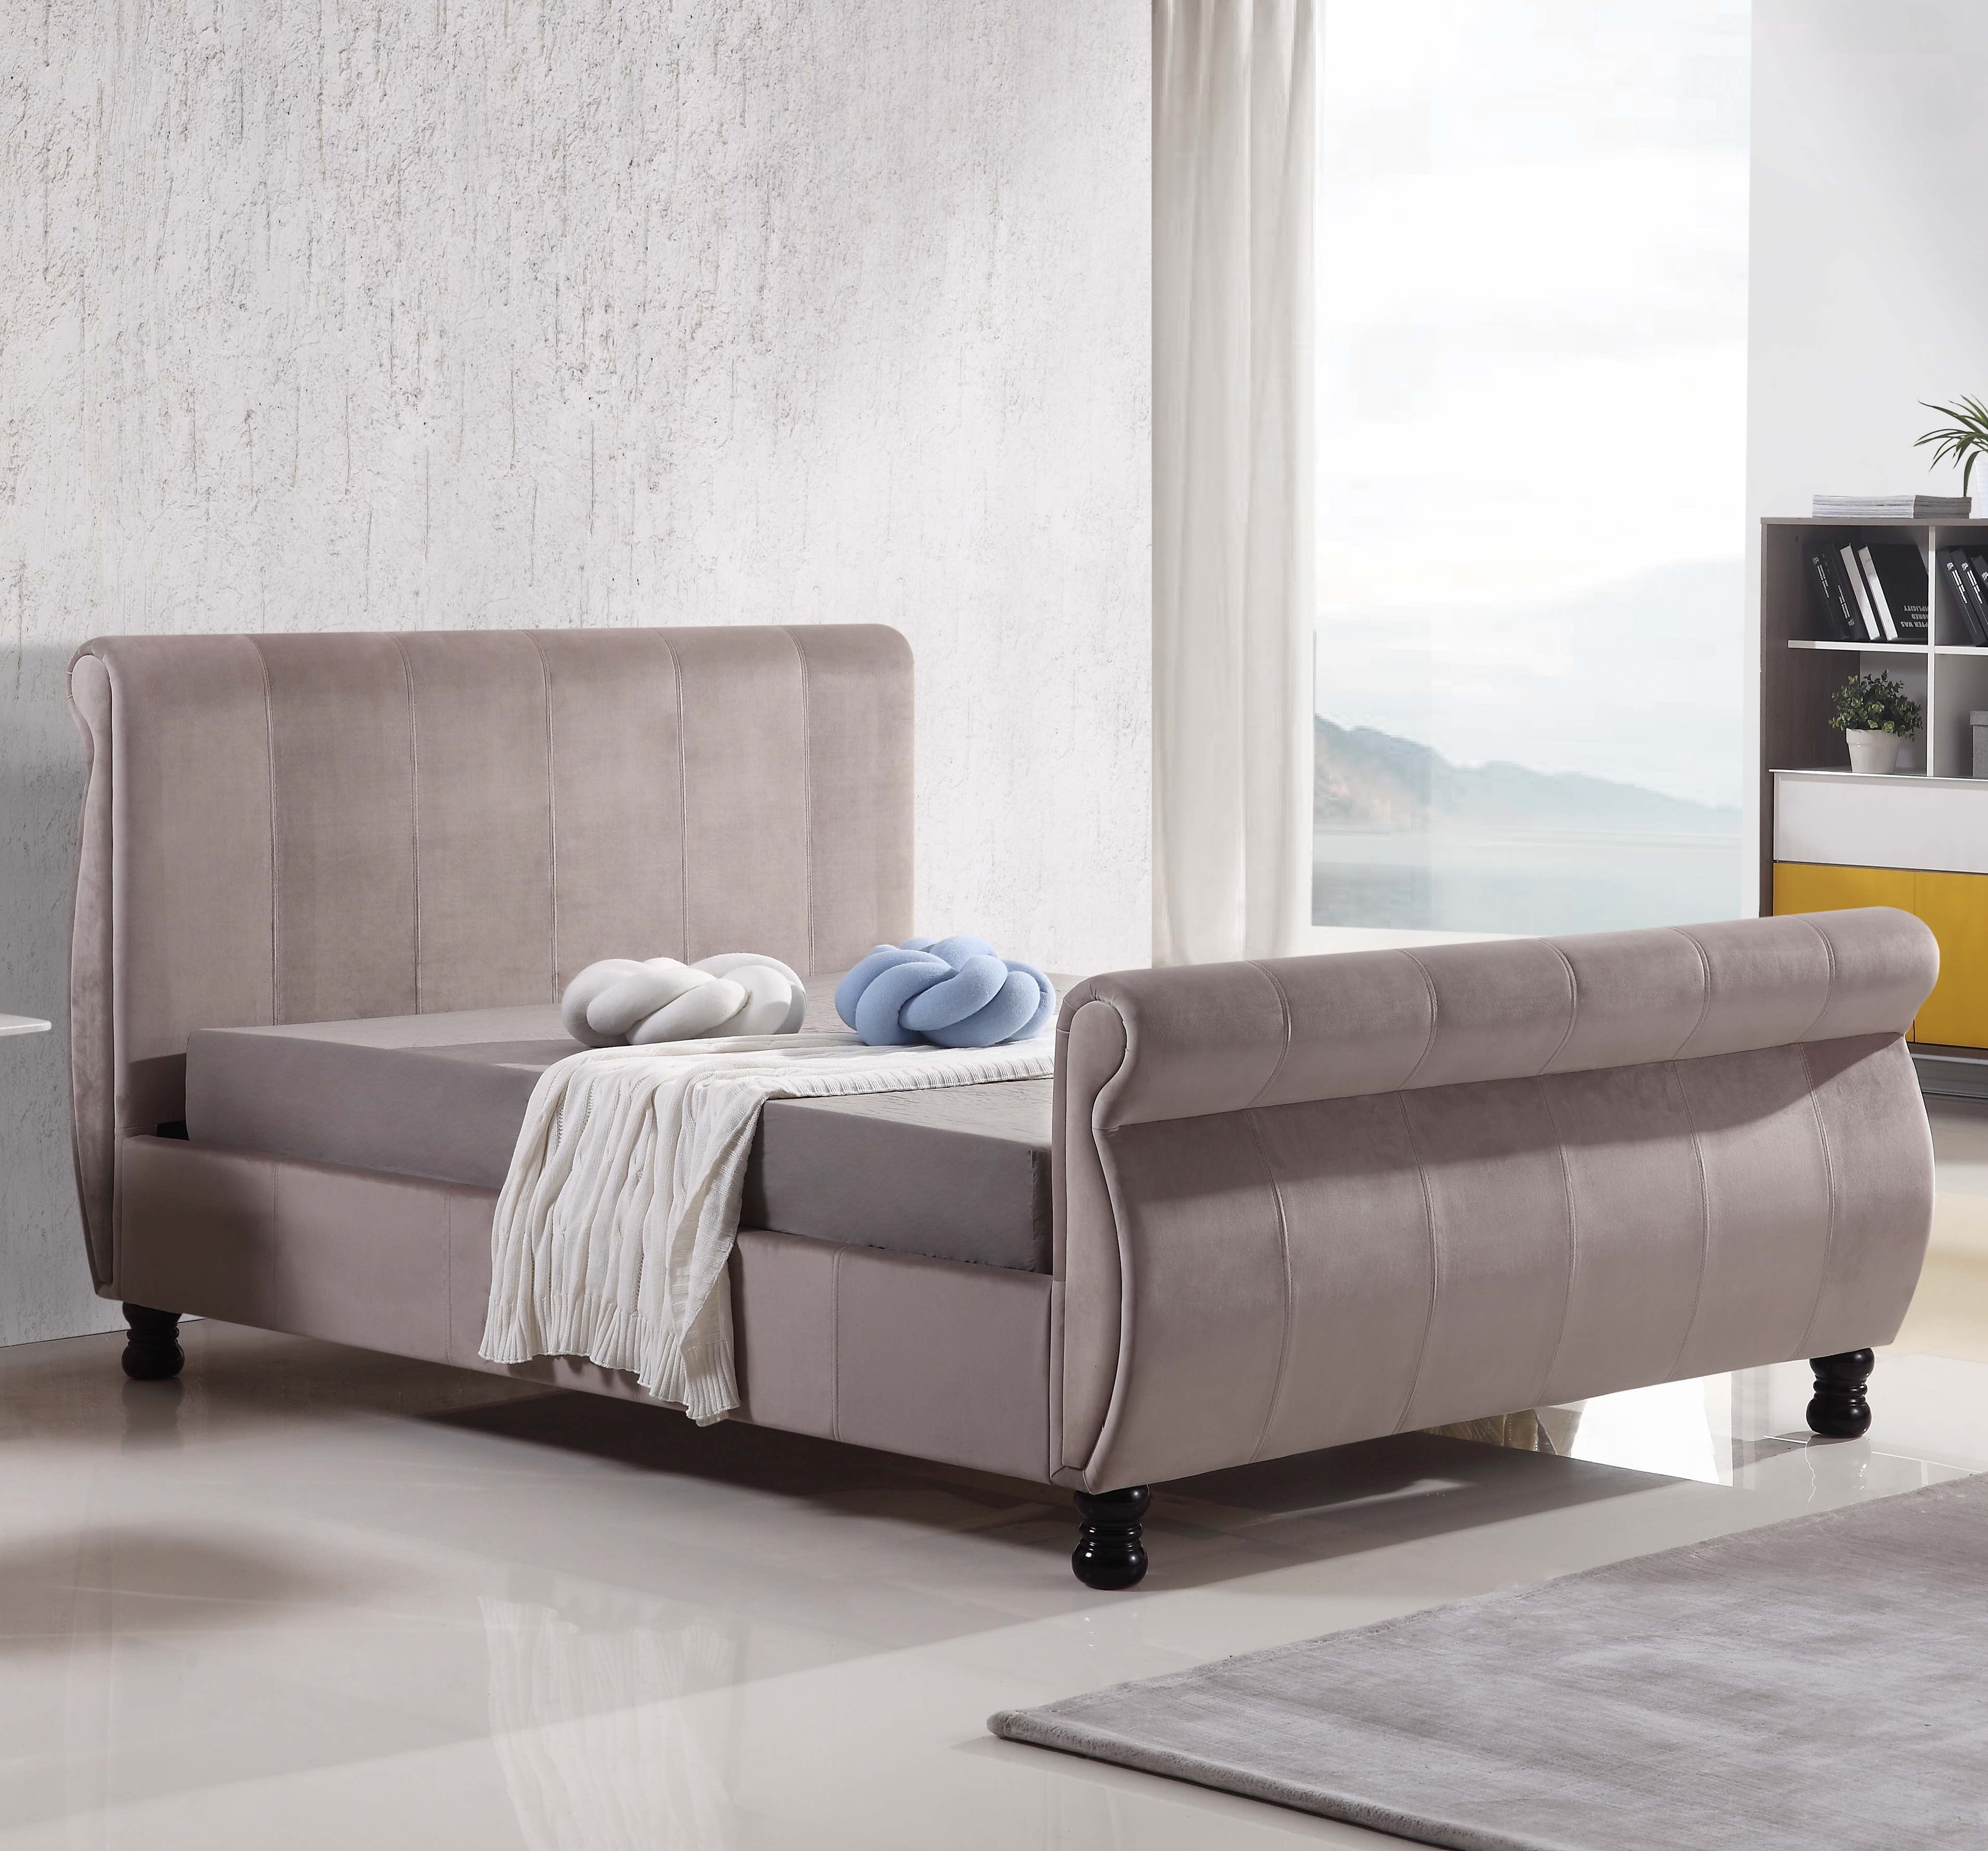 Italian Furniture Company Leeds The Italian Furniture Company Leeds Ltd Importers And